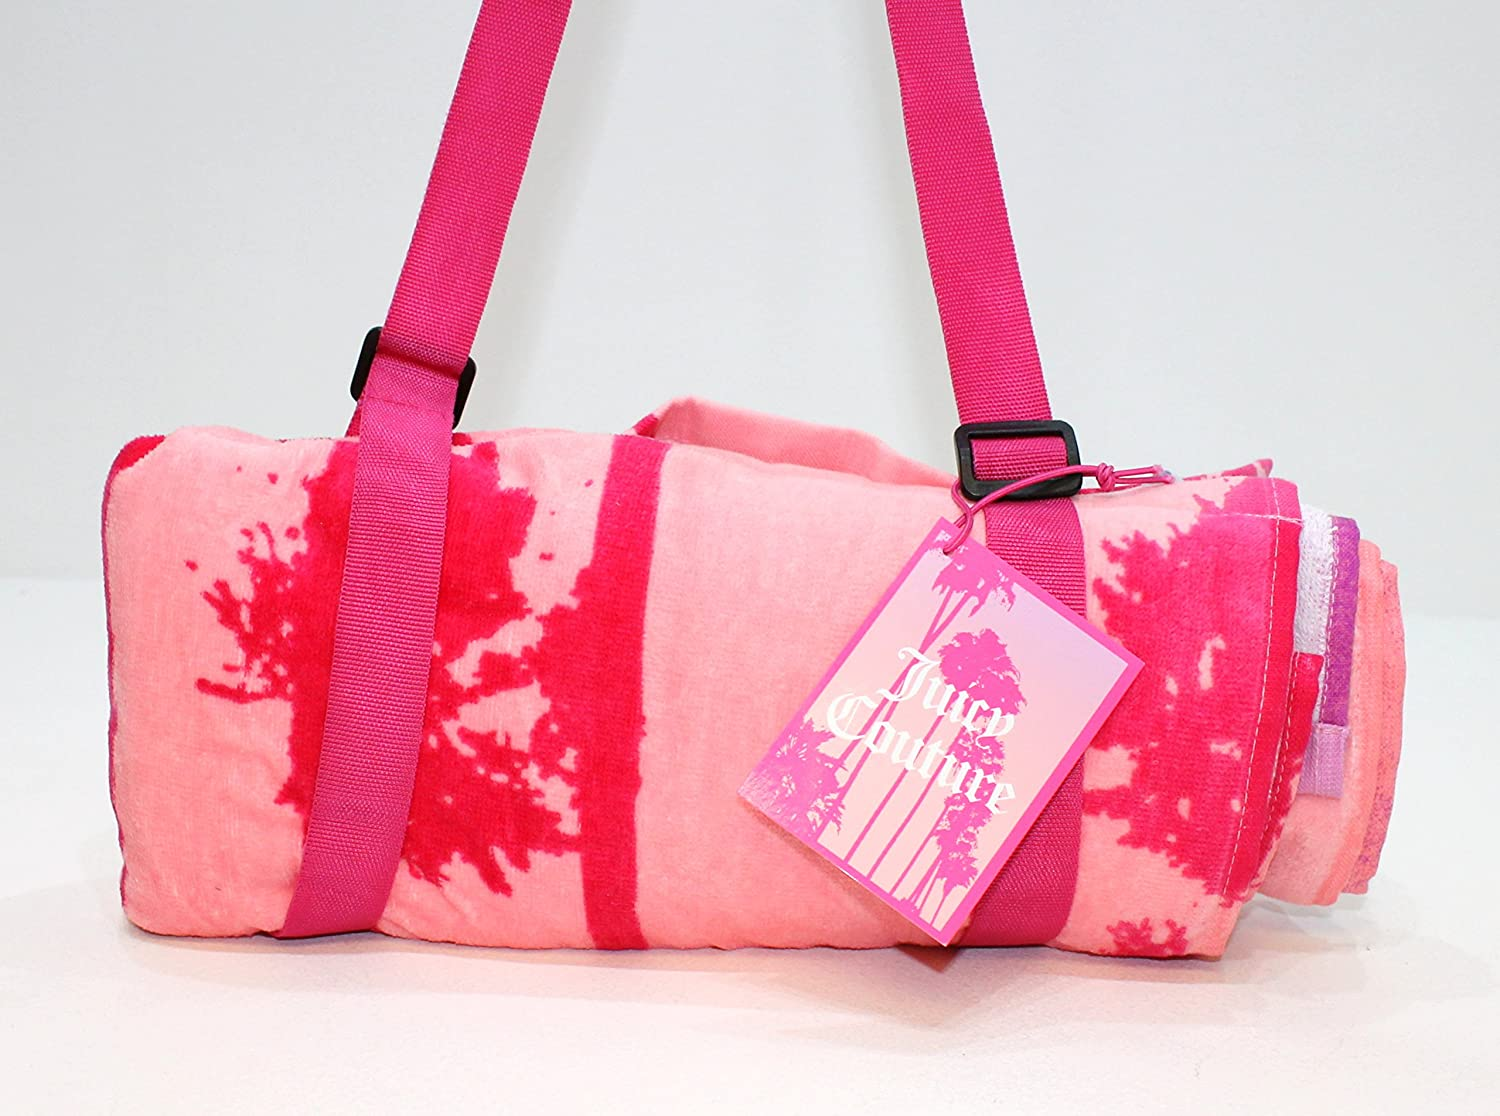 JUICY COUTURE MALIBU COLLECTION LADIES PINK BEACH GYM TOWEL WITH CARRY HANDLE Amazoncouk Beauty